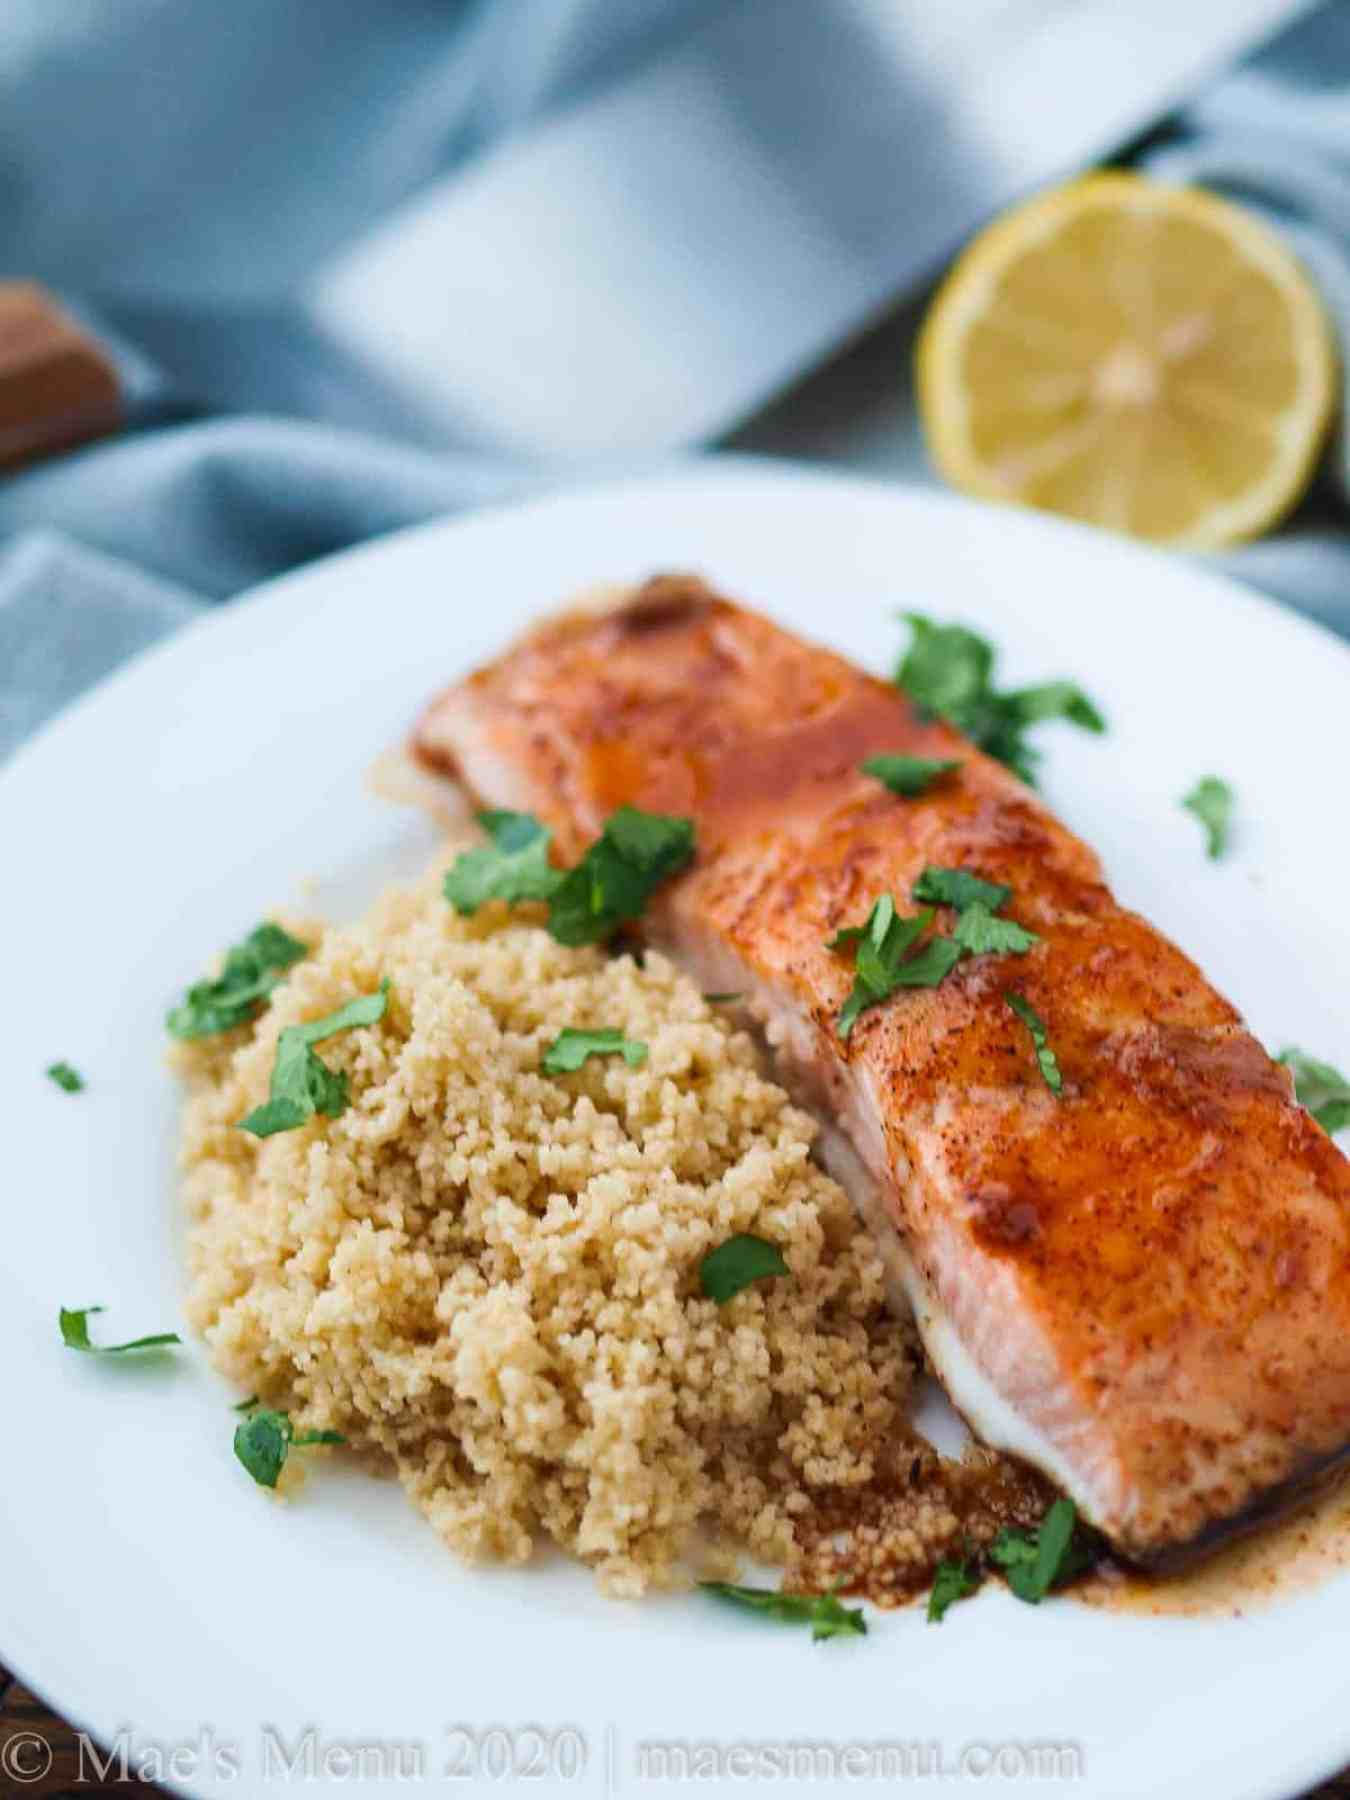 A nice fillet of spicy bourbon glazed salmon over couscous.